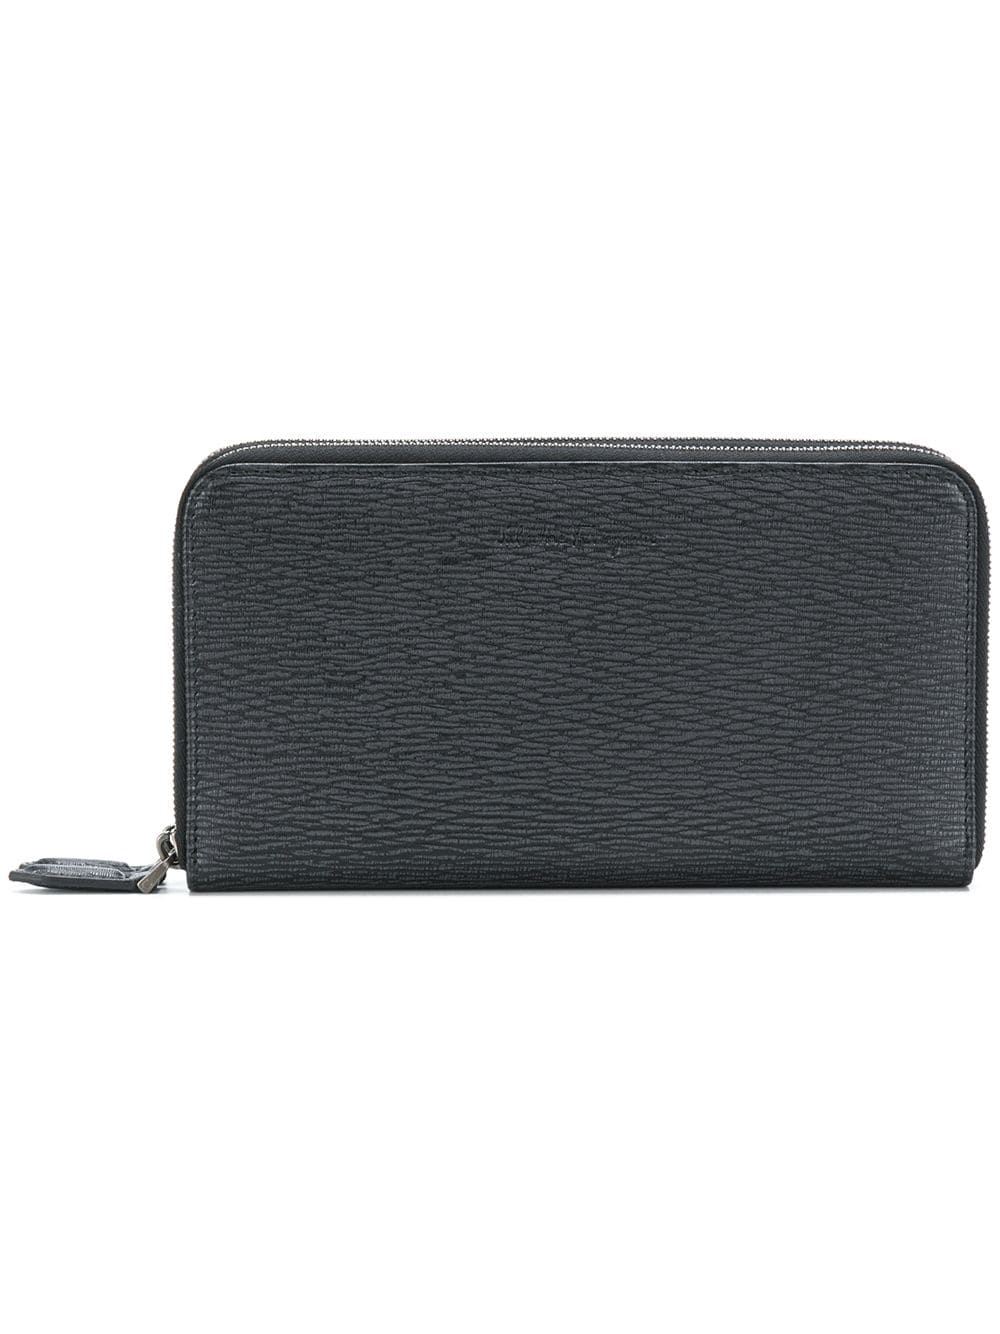 Revival Leather Wallet